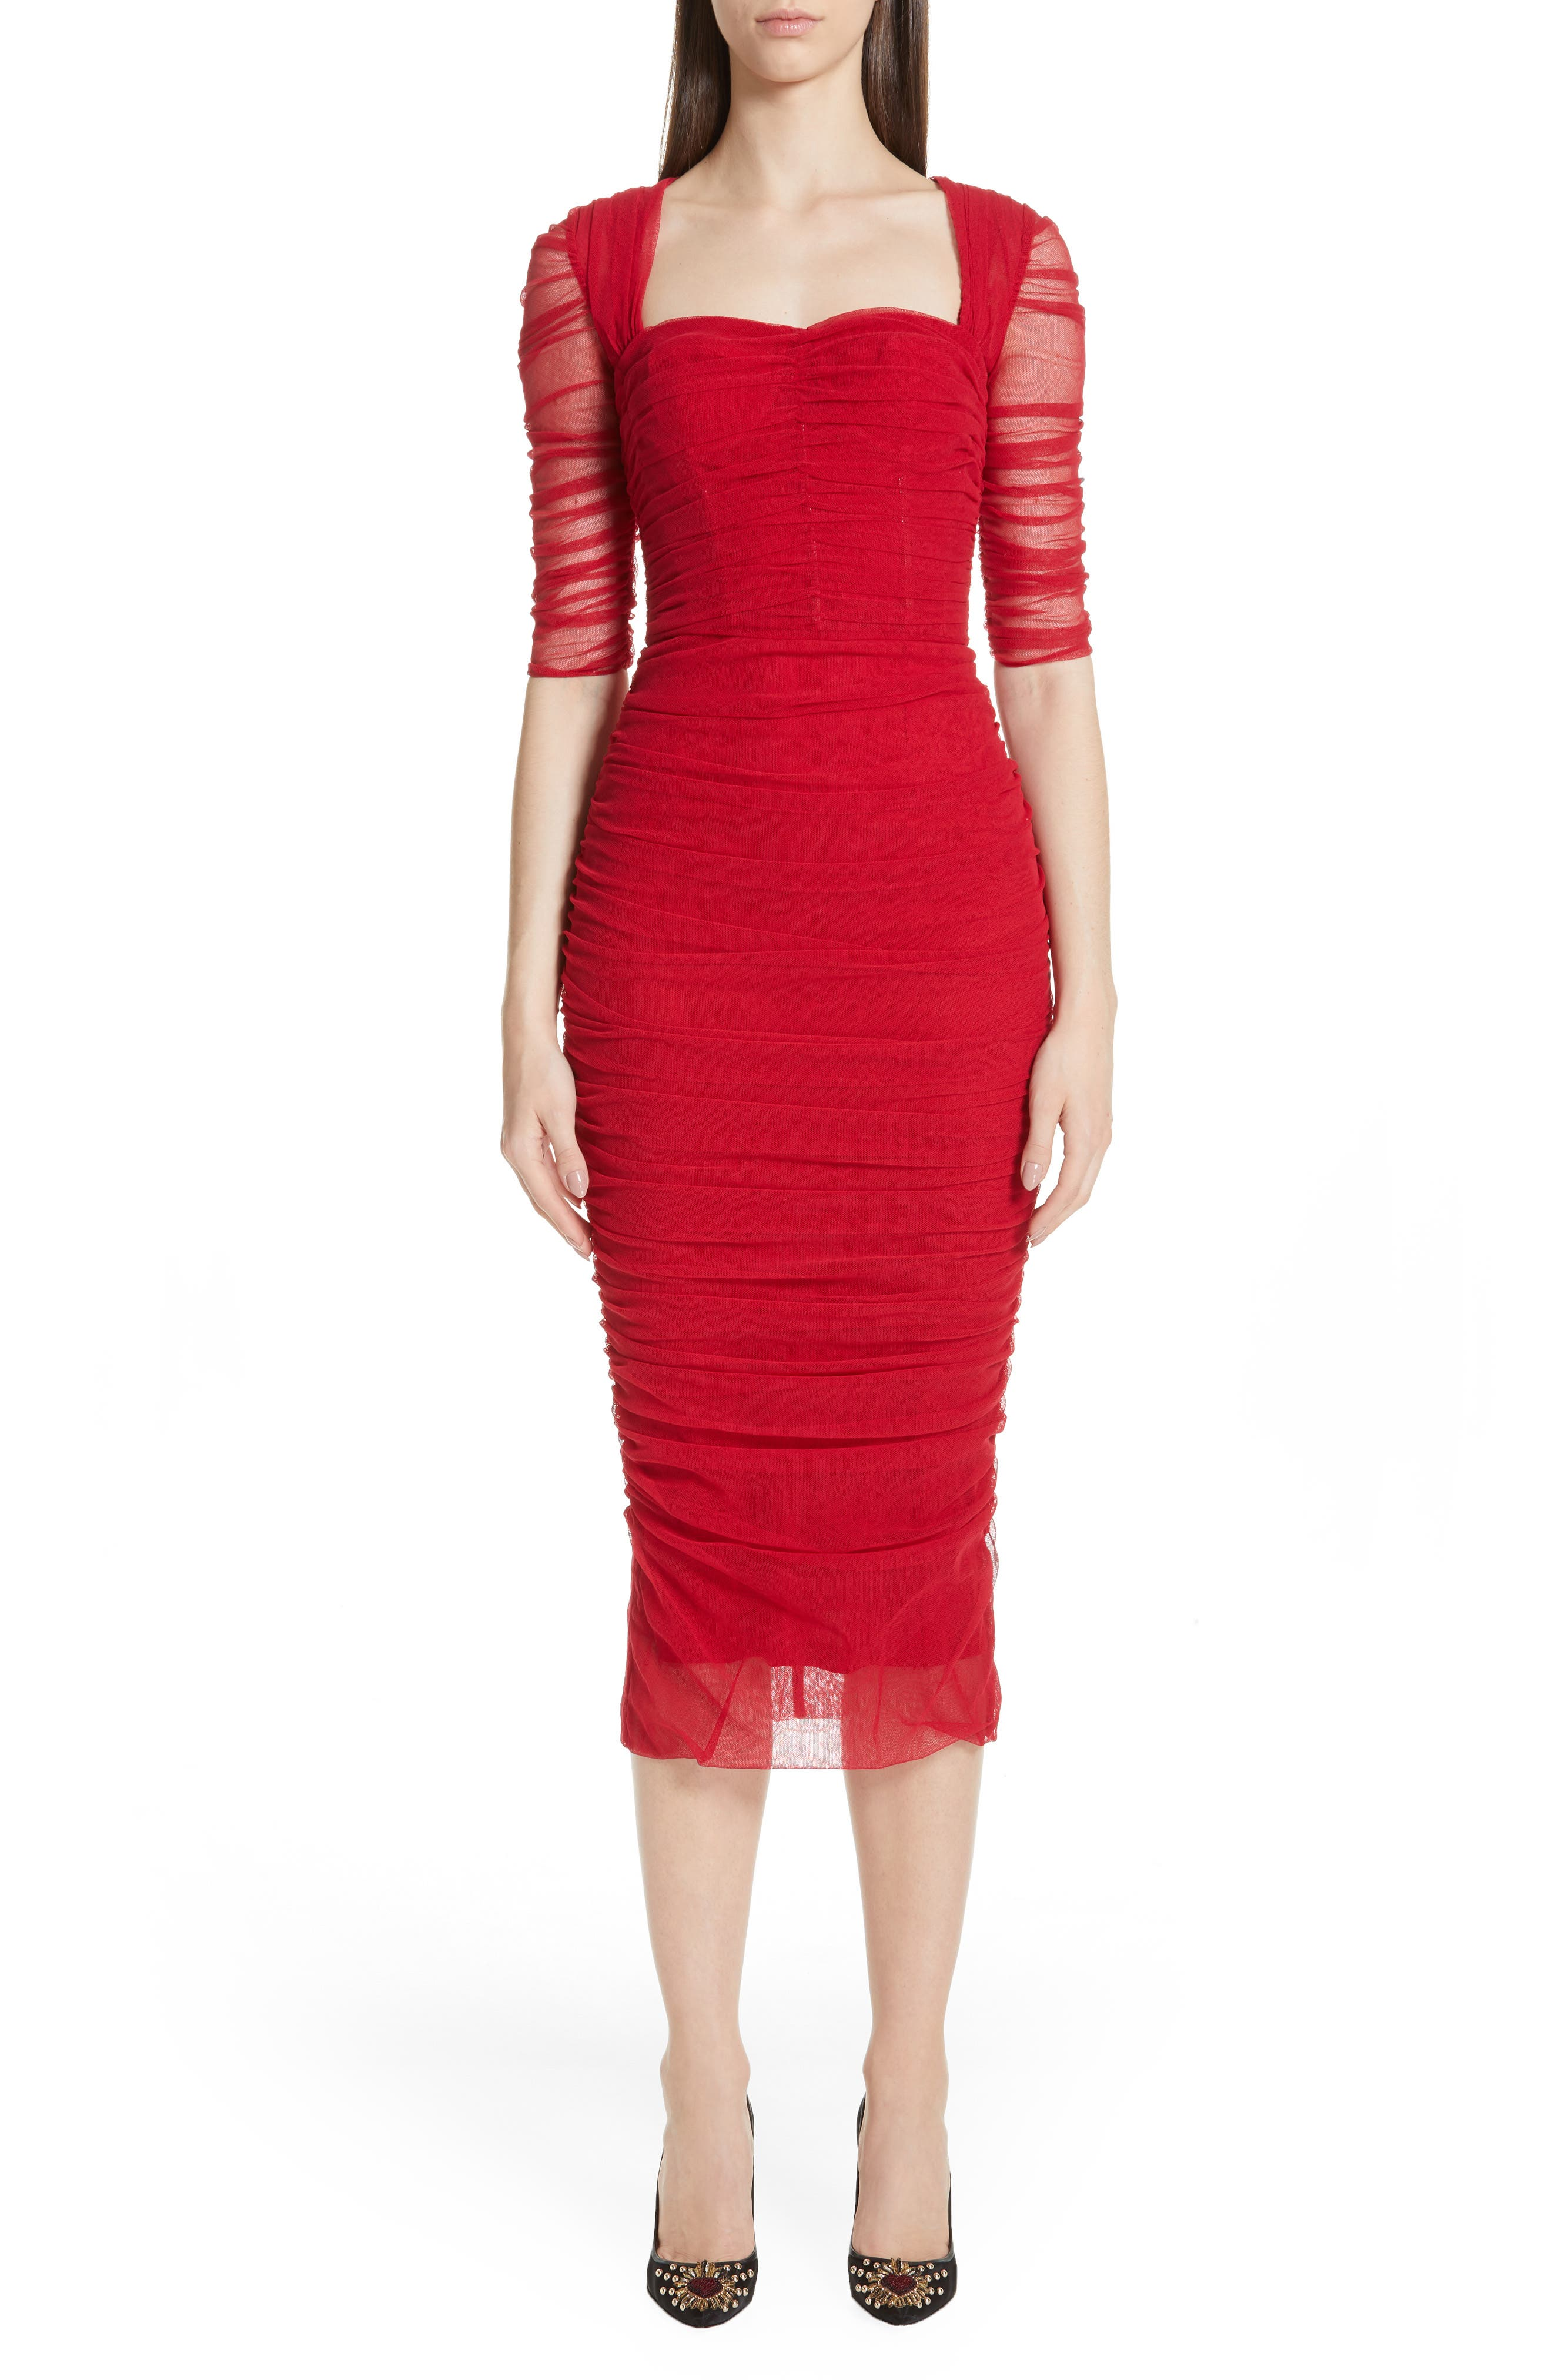 Dolce & gabbana Ruched Tulle Body-Con Dress, 8 IT - Red